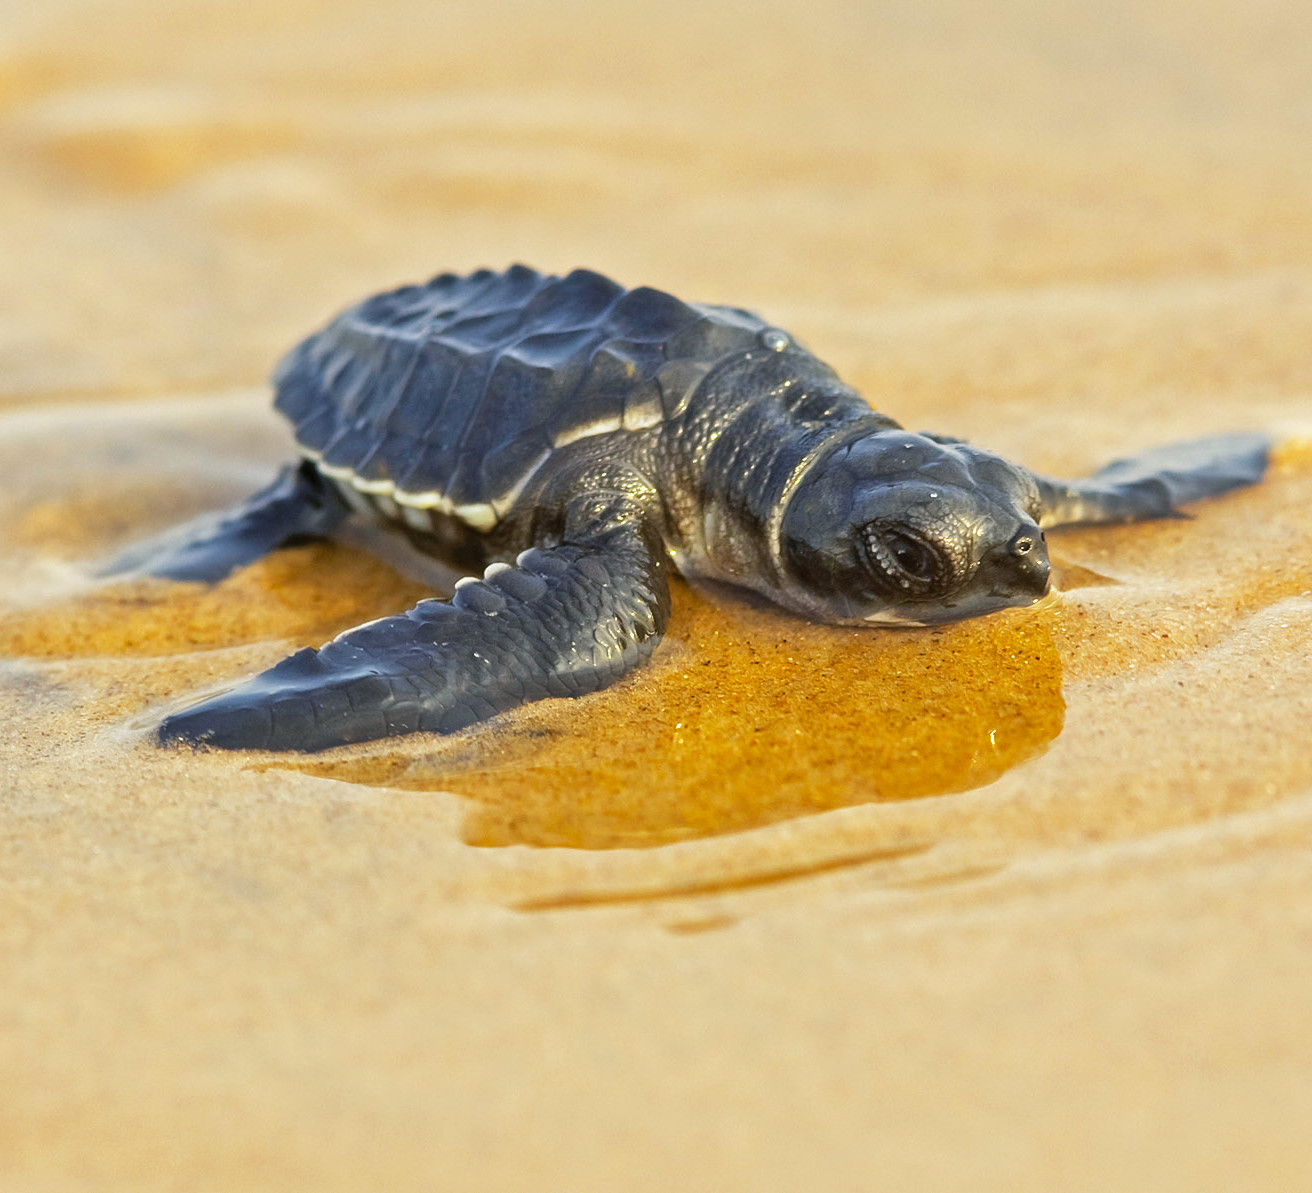 Ecotourism, and the Olive Ridley Turtles of Dapoli